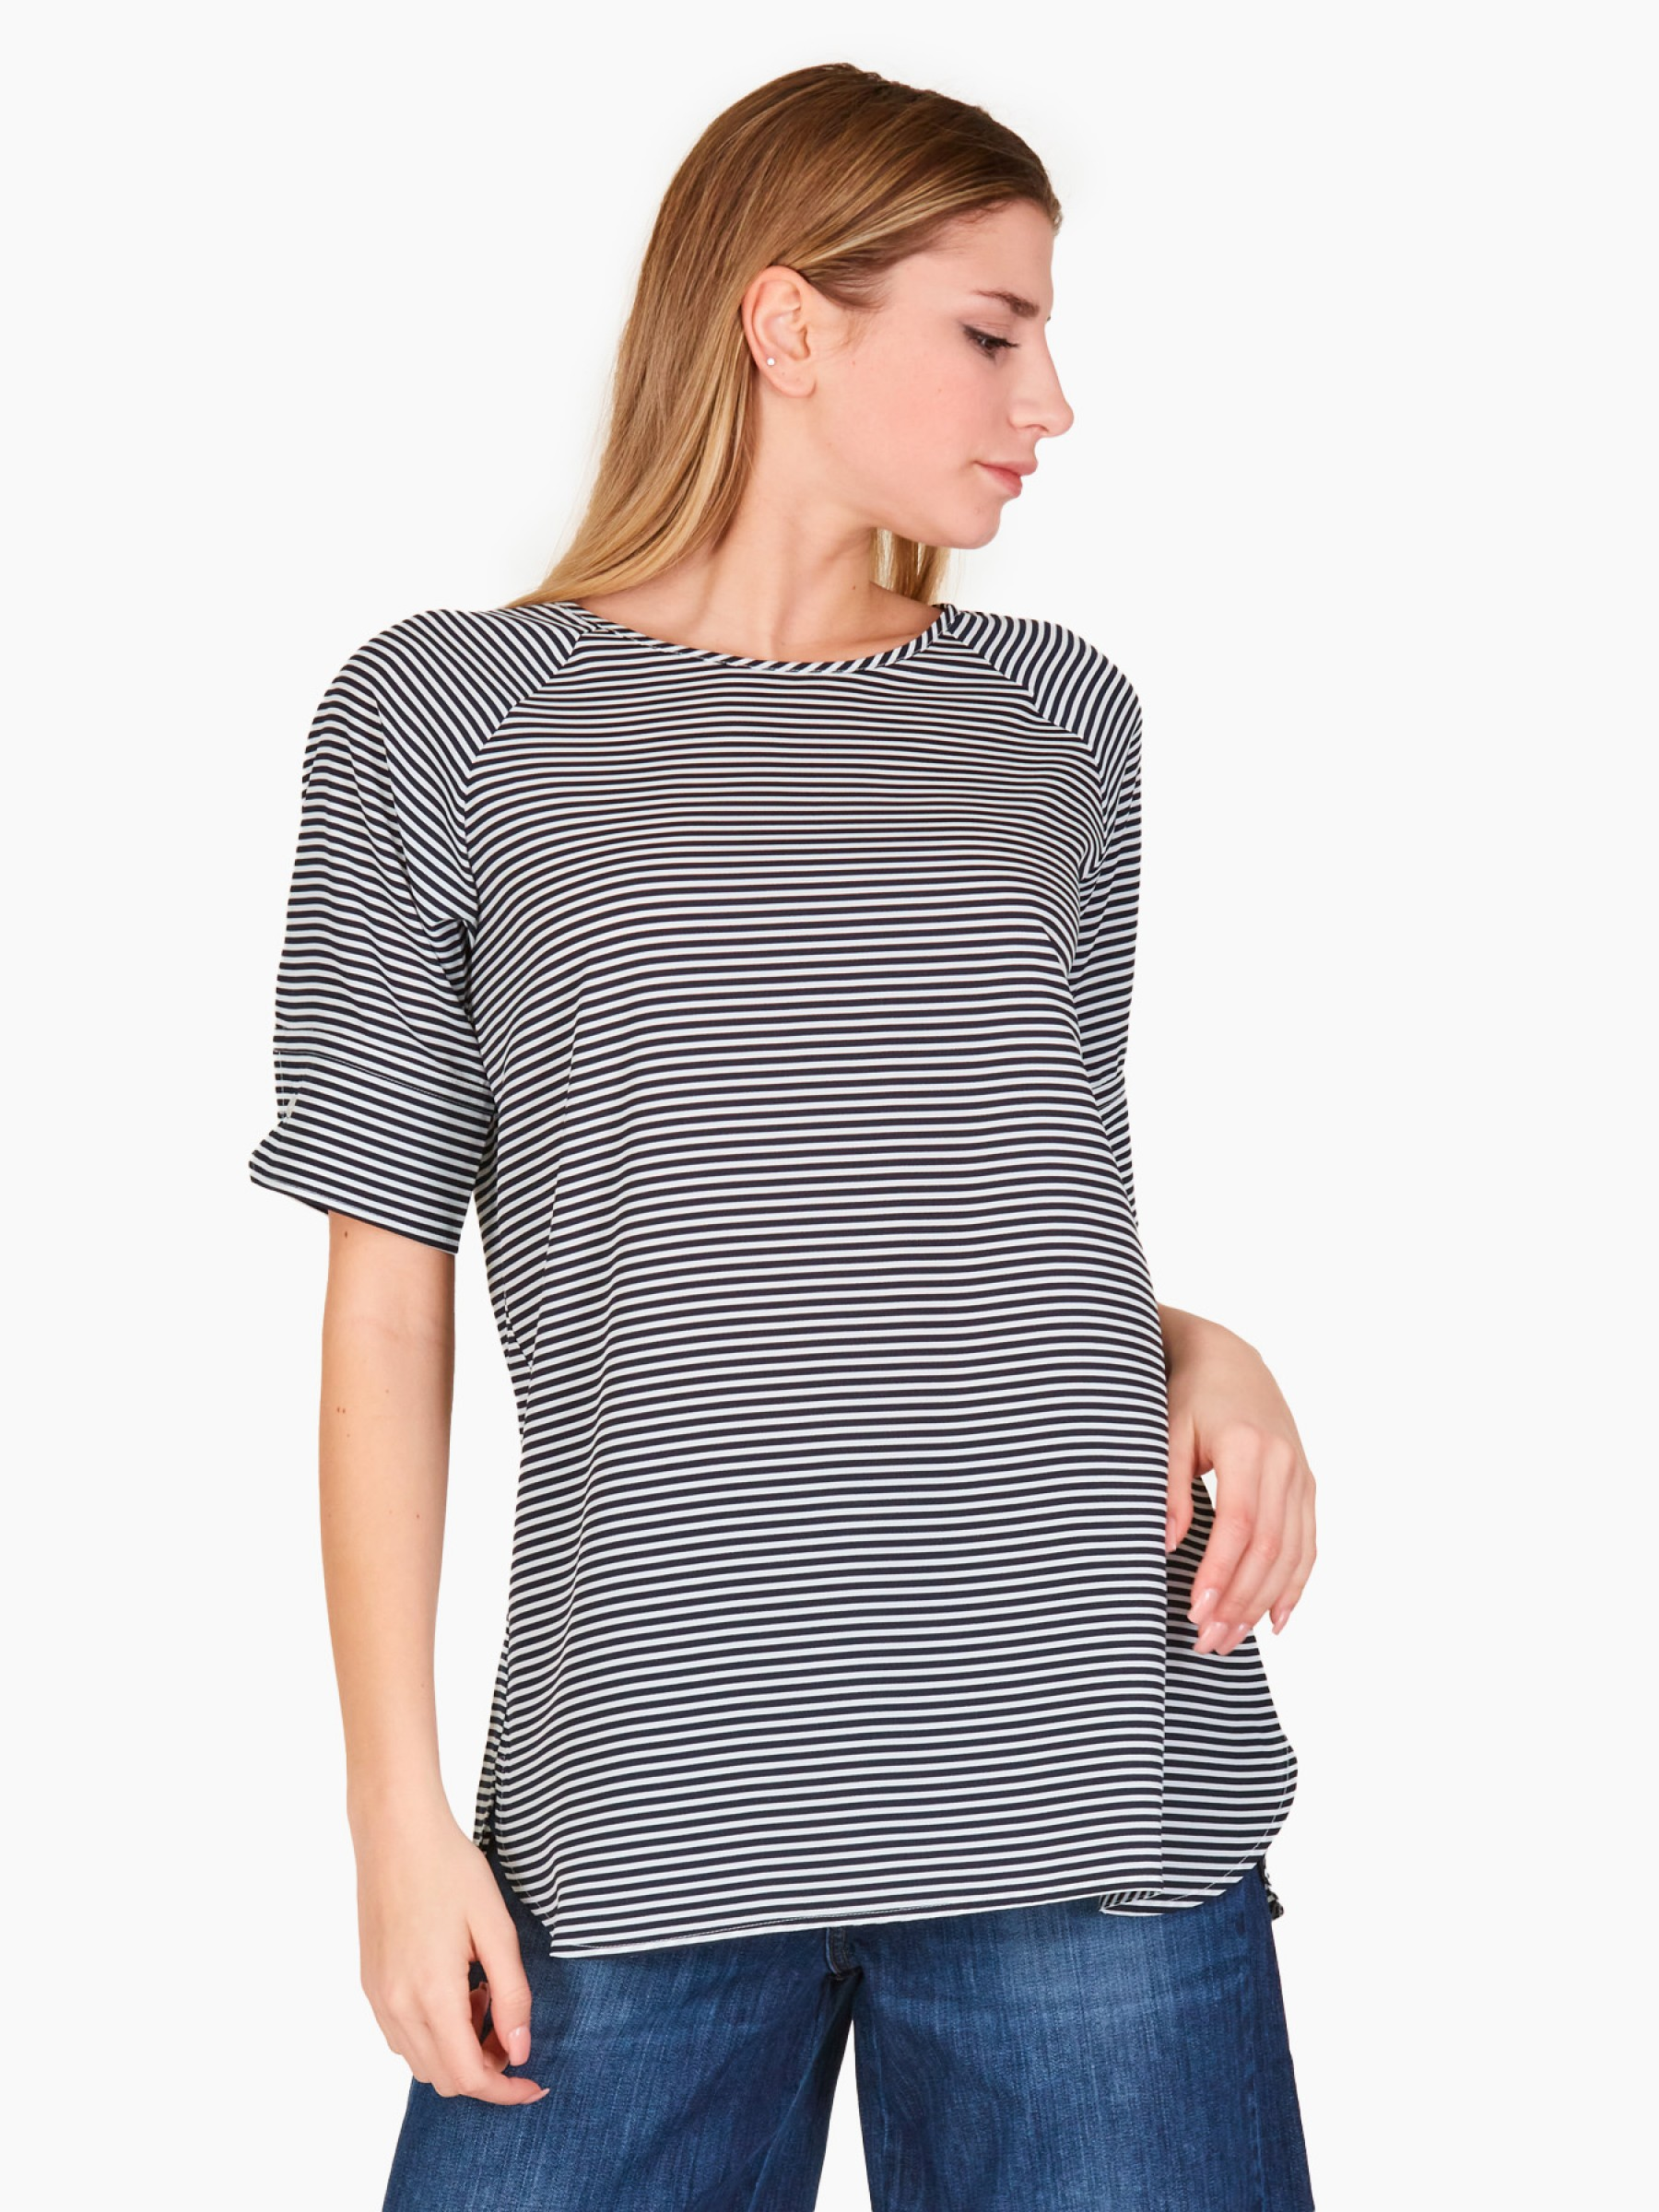 Emme Blusa a righe PE2021 MODELLI-002-NAVY